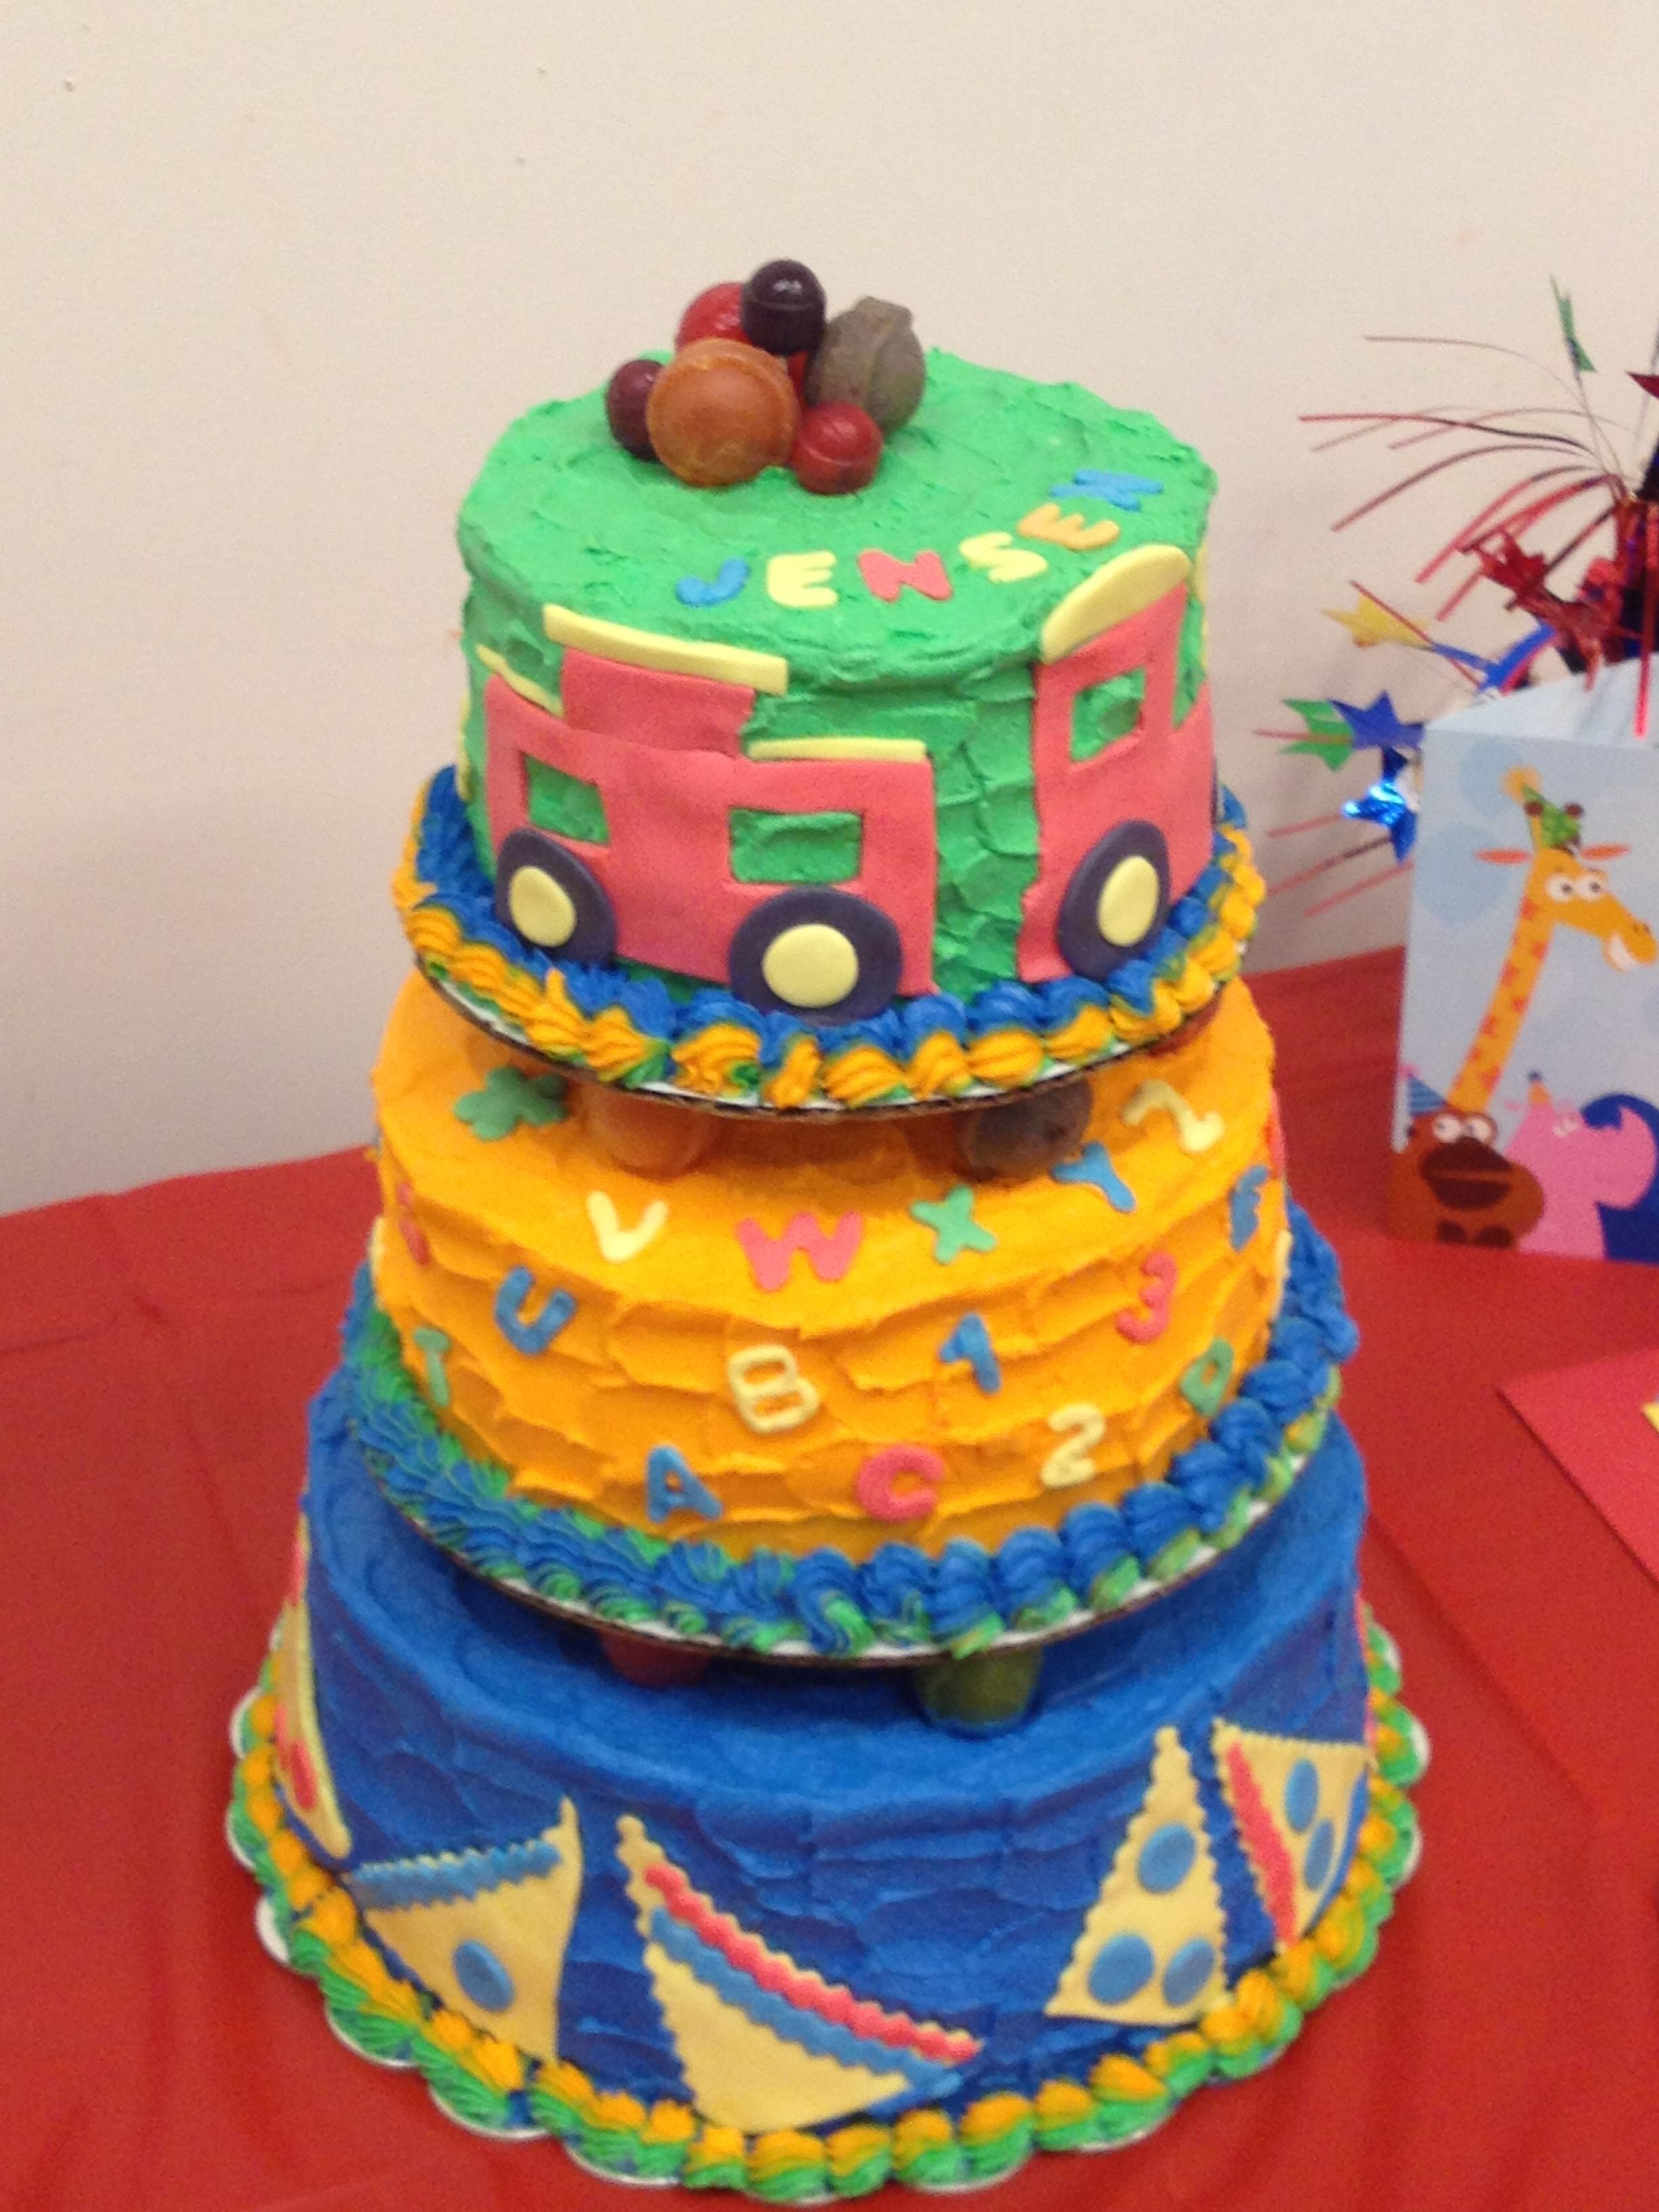 ABCs & 123s Cake.Tastey fun for the entire party.  Bright and colorful three-tiered treat.